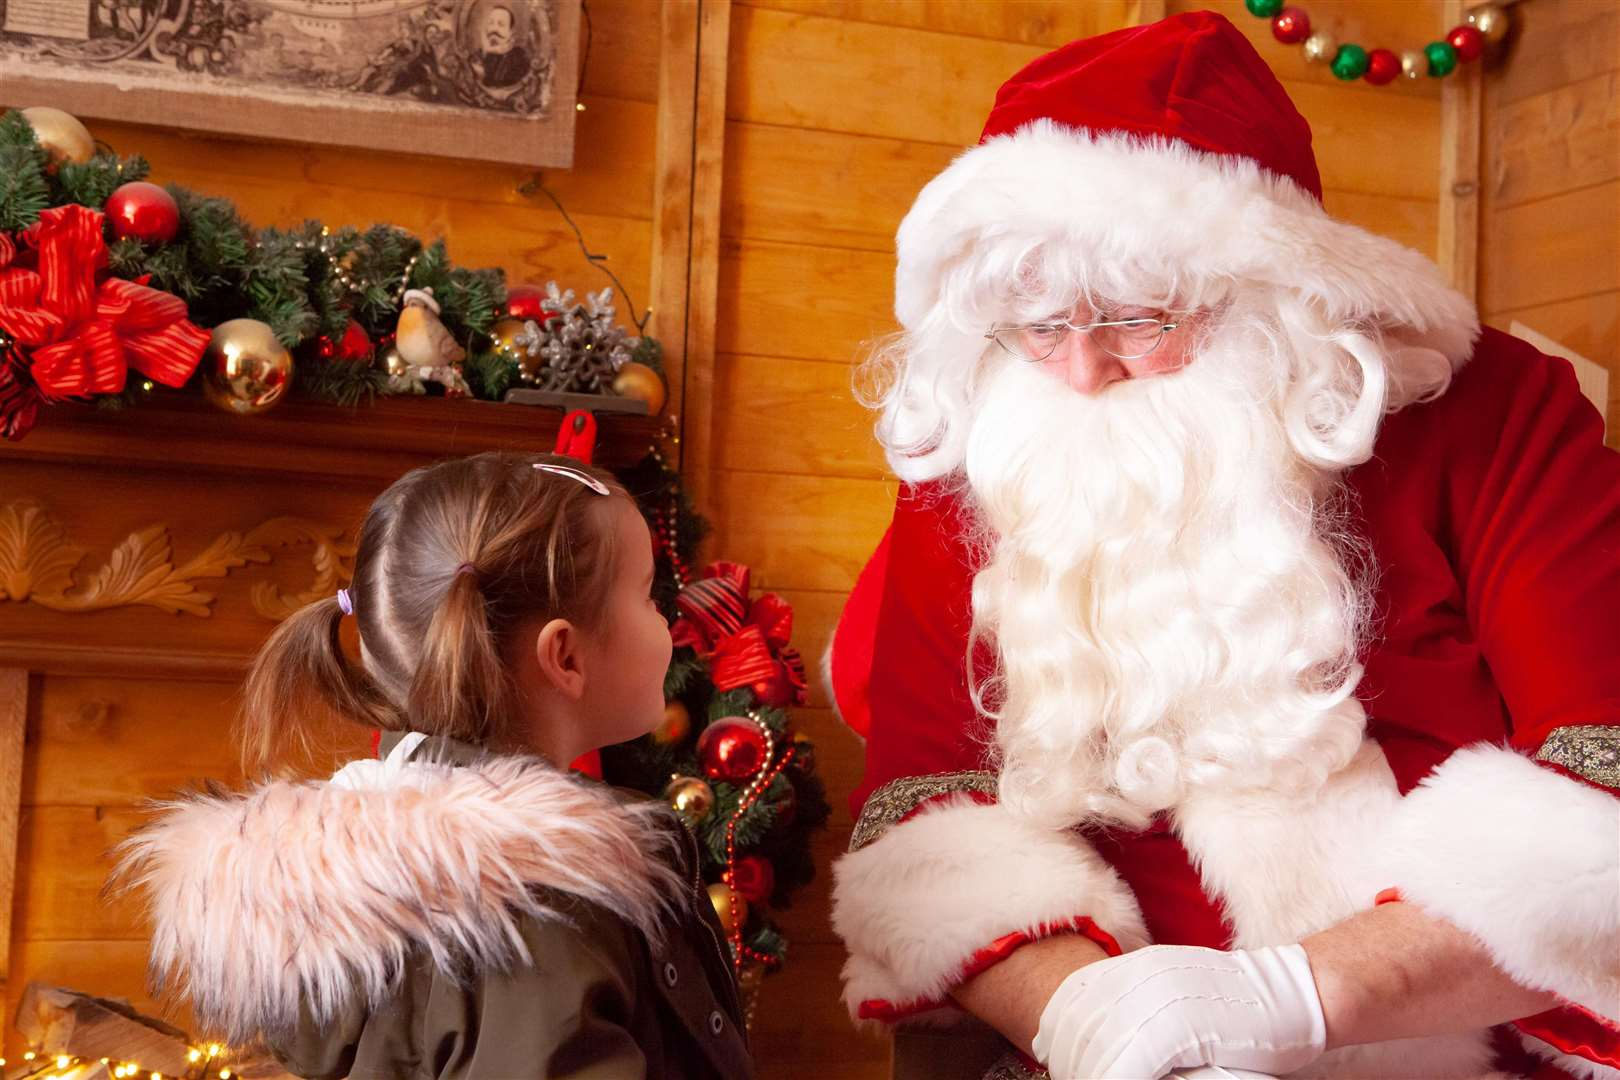 Kent Christmas.Kent Life To Host Christmas Experience For Additional Needs